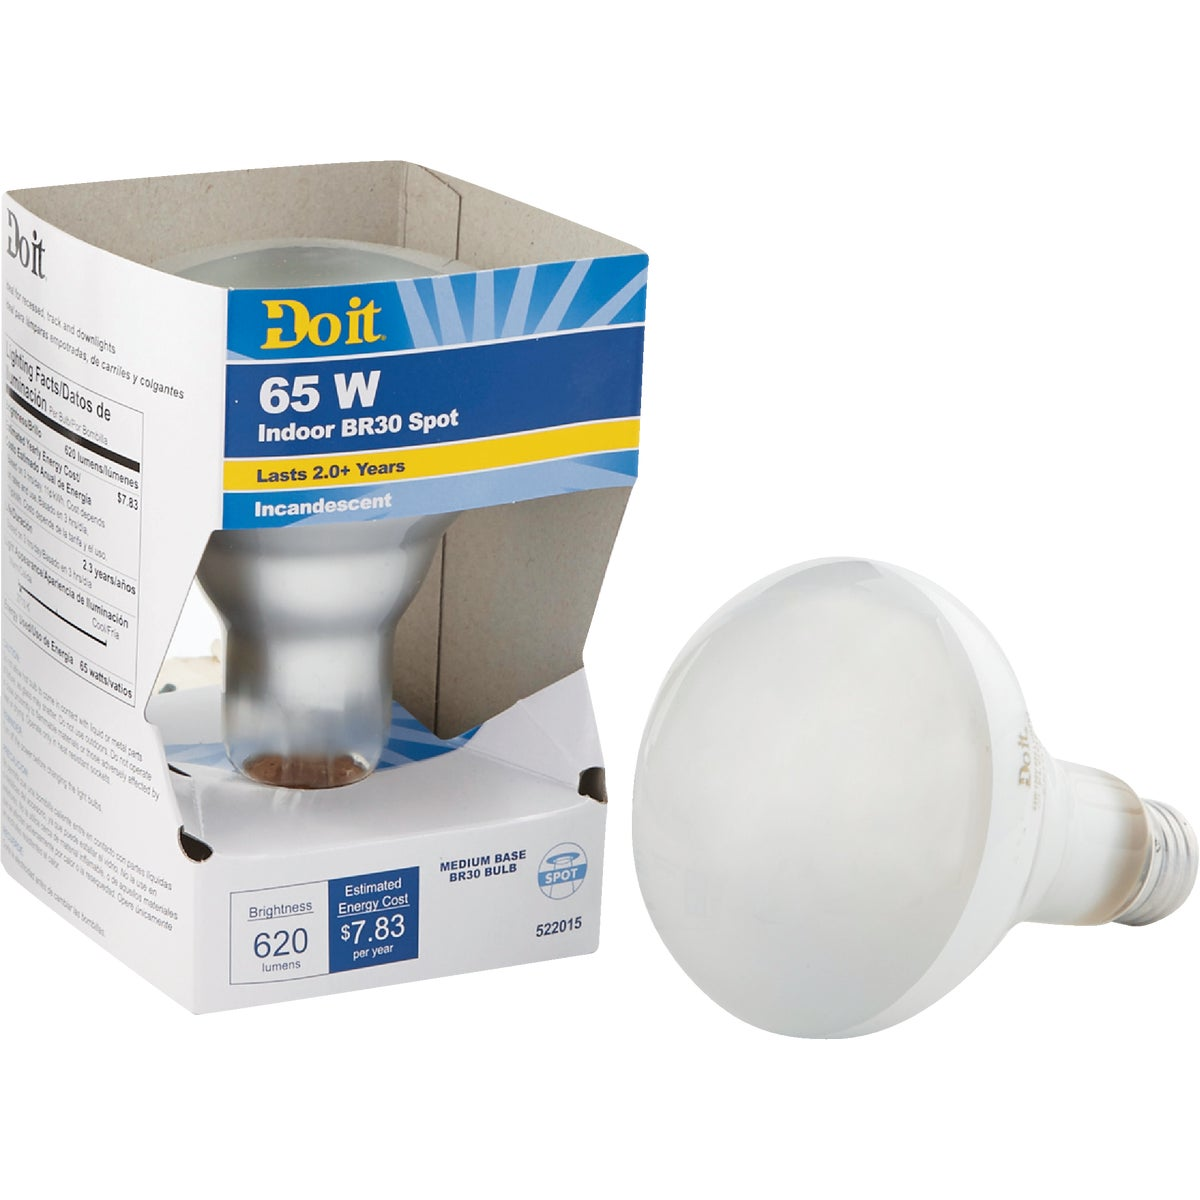 65W BR30 REFLECTOR BULB - 18390 65BR30/SP-DIB by G E Private Label